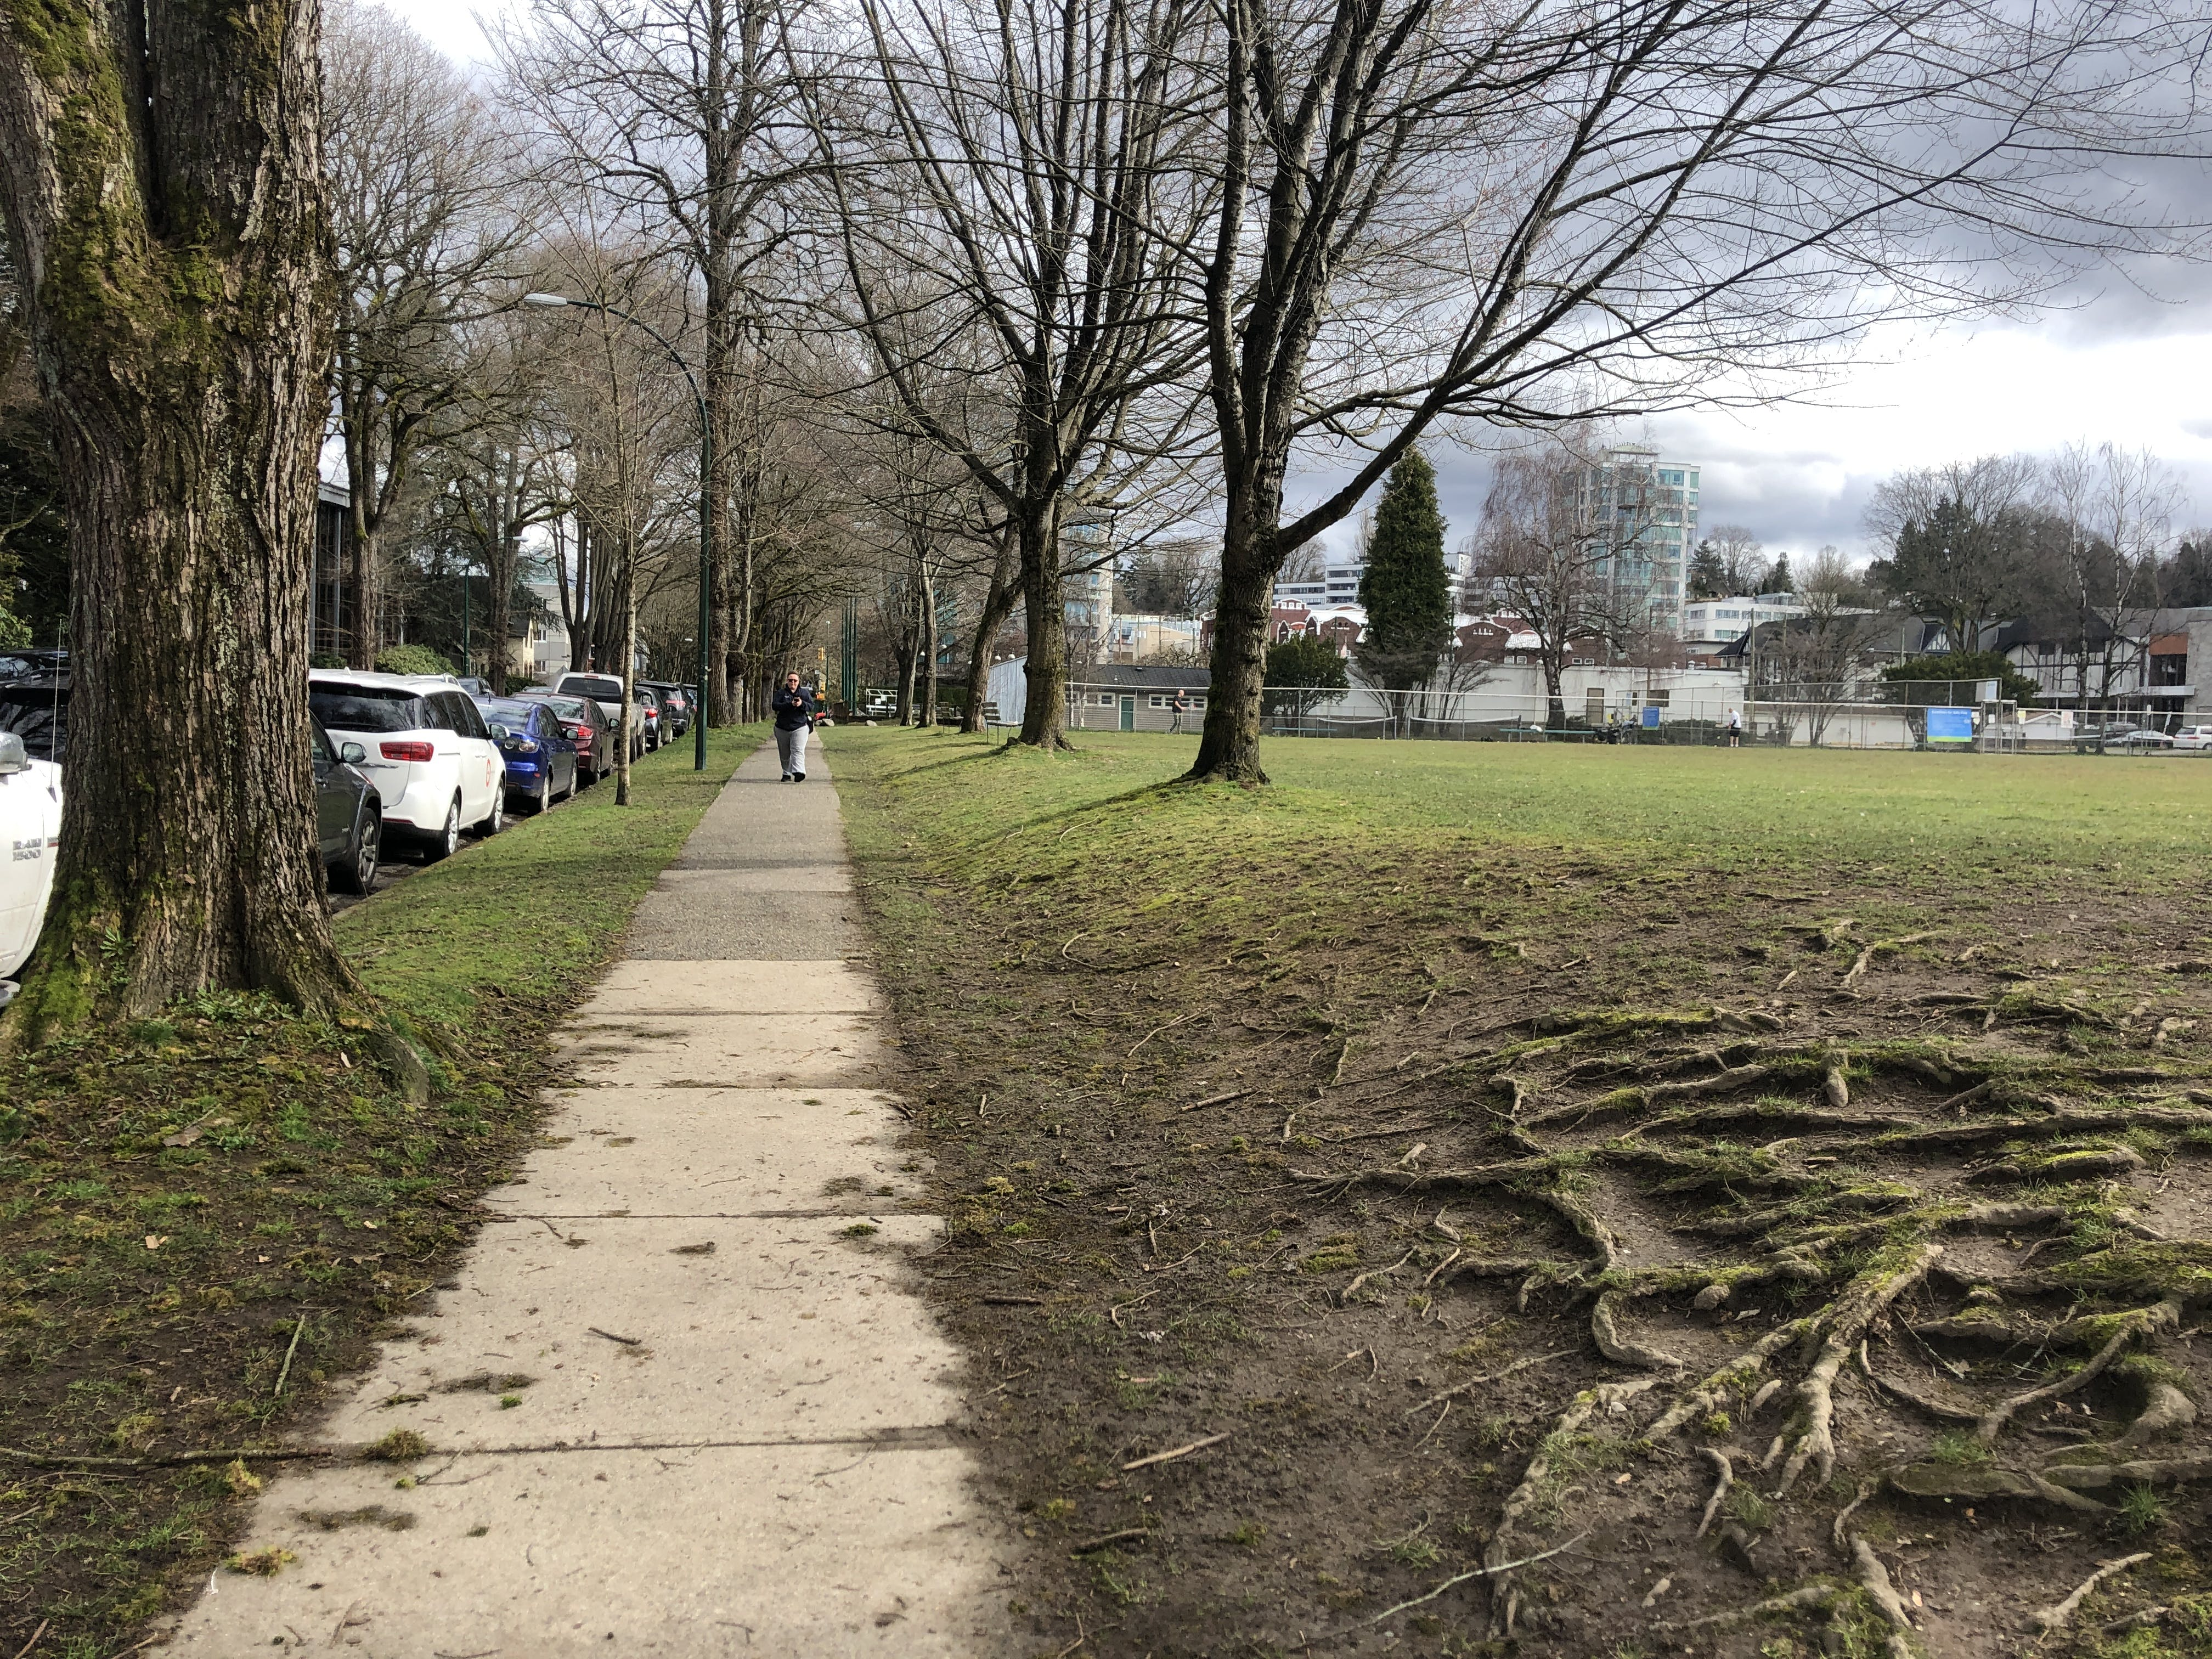 14th Avenue looking east at perimeter of the park